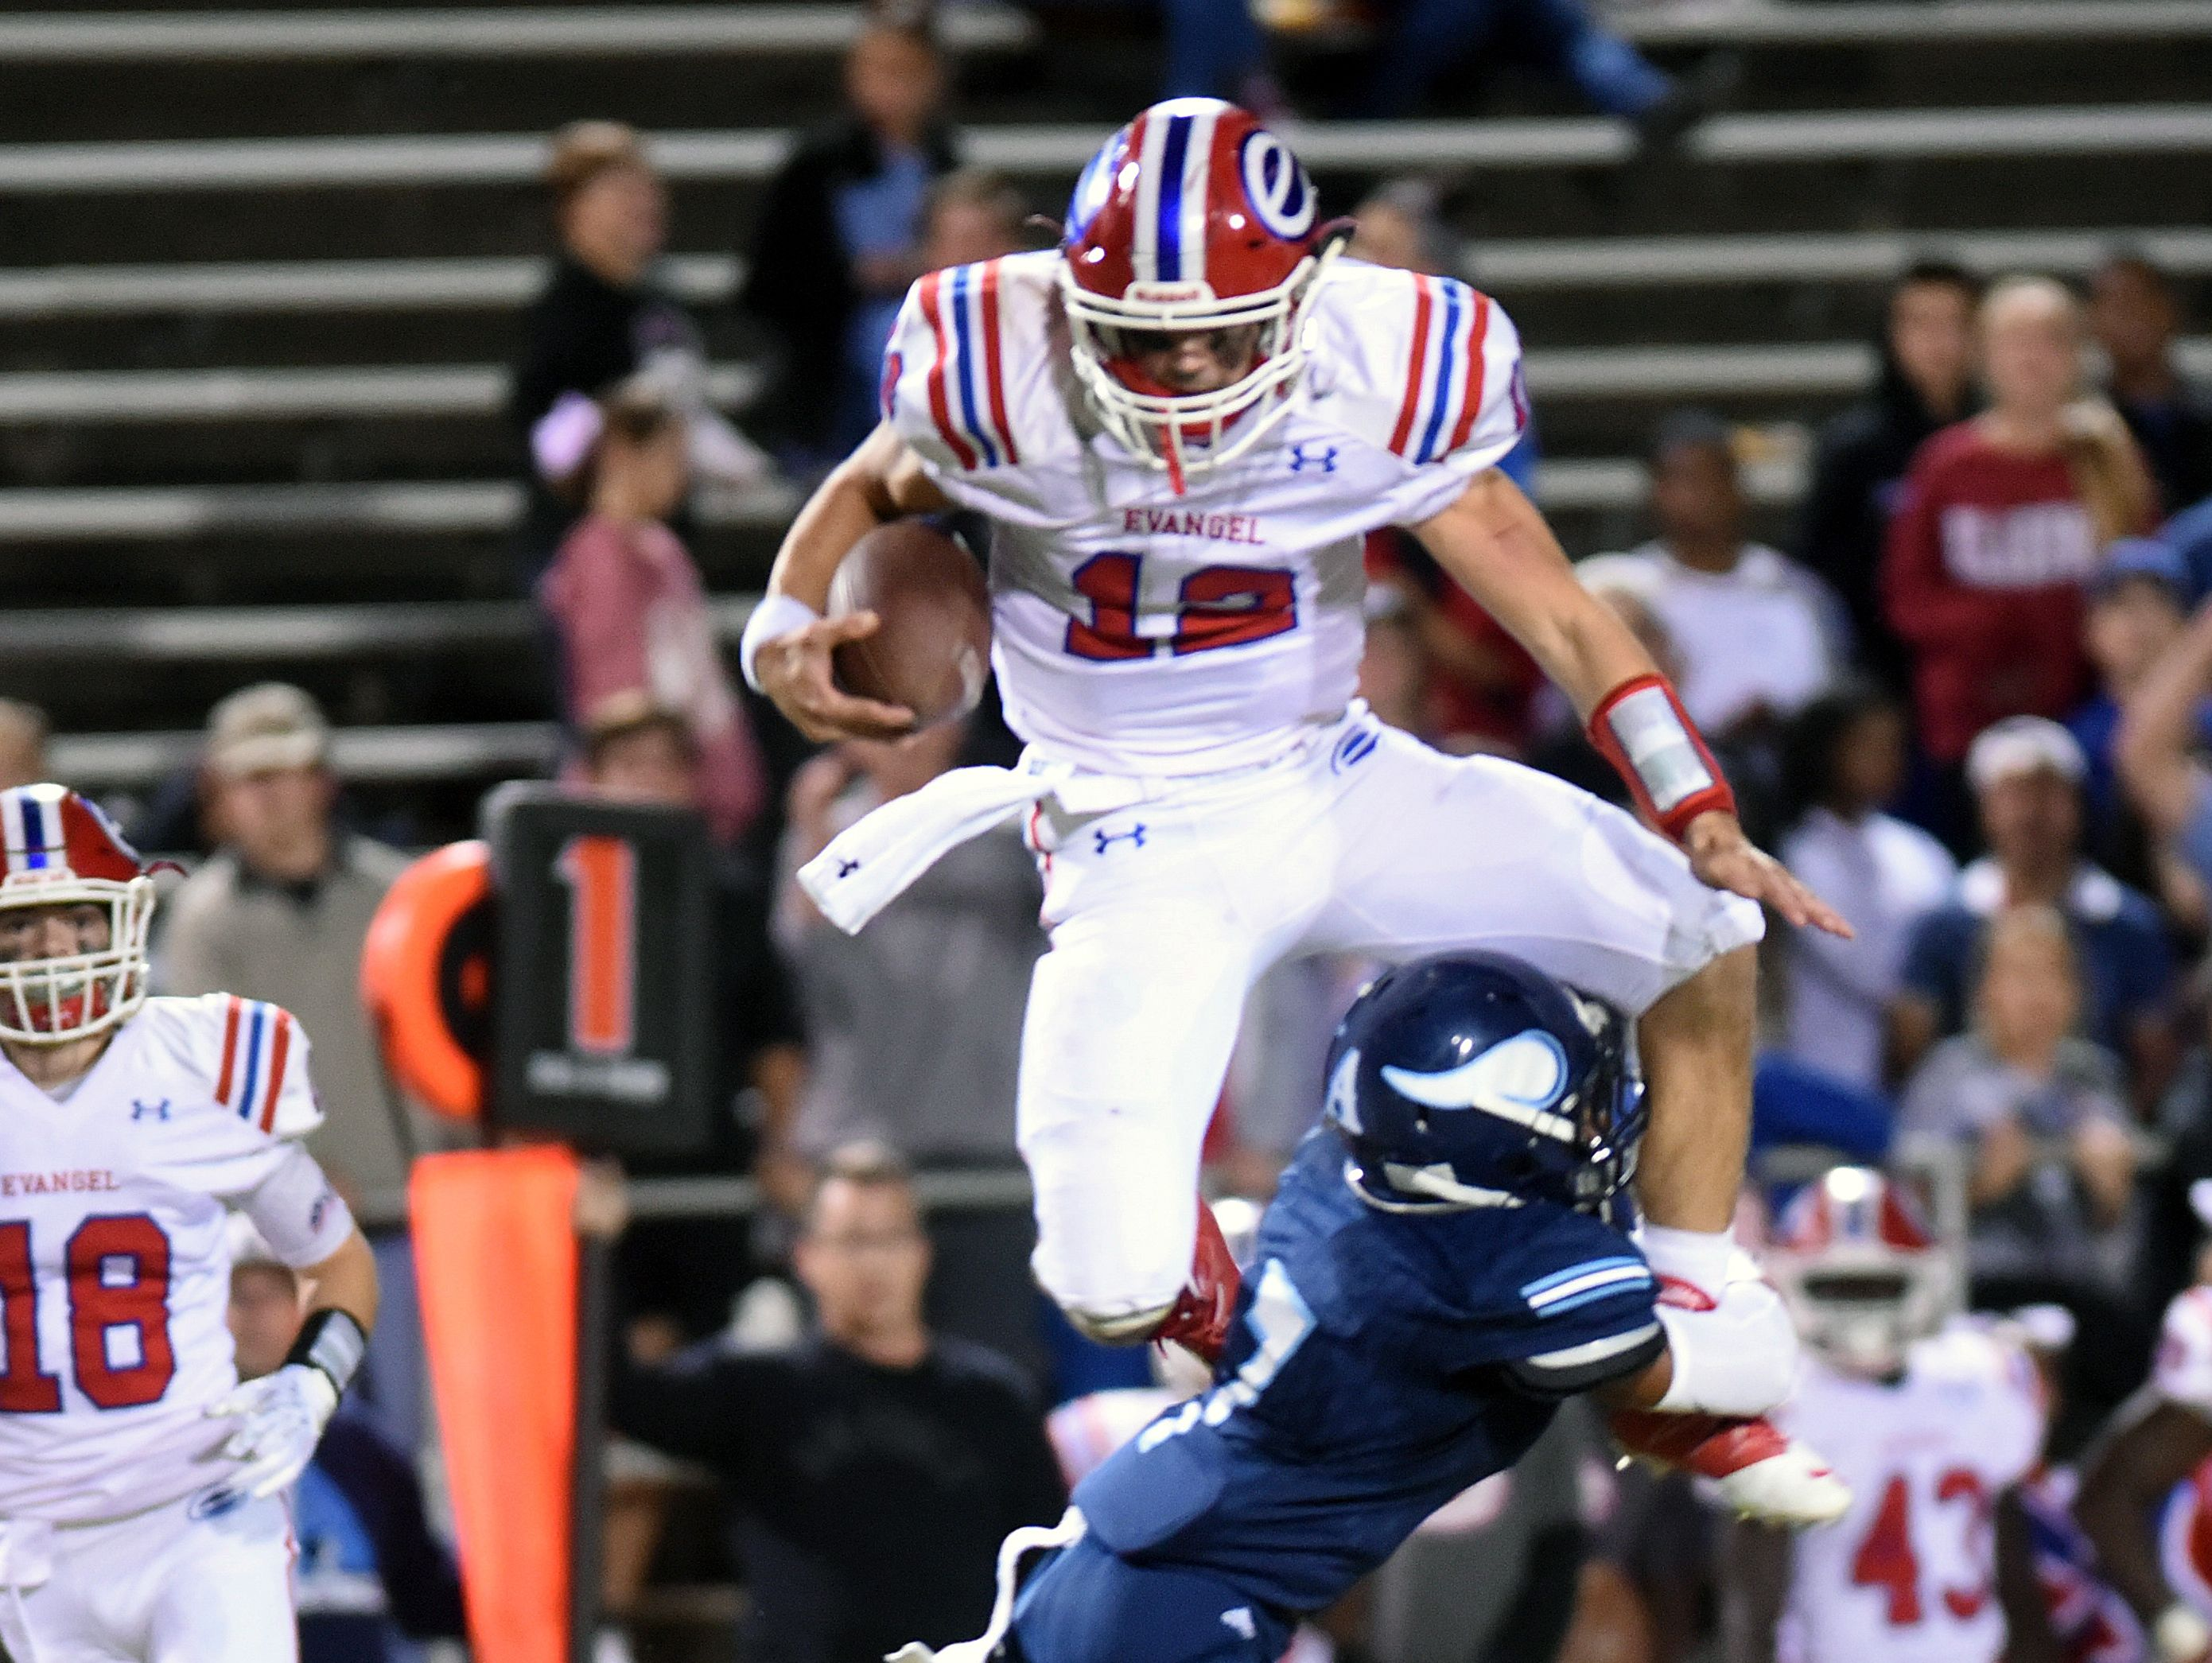 Evangel quartrback Connor Curry has been selected for teh Blue-Grey All-American Bowl. .